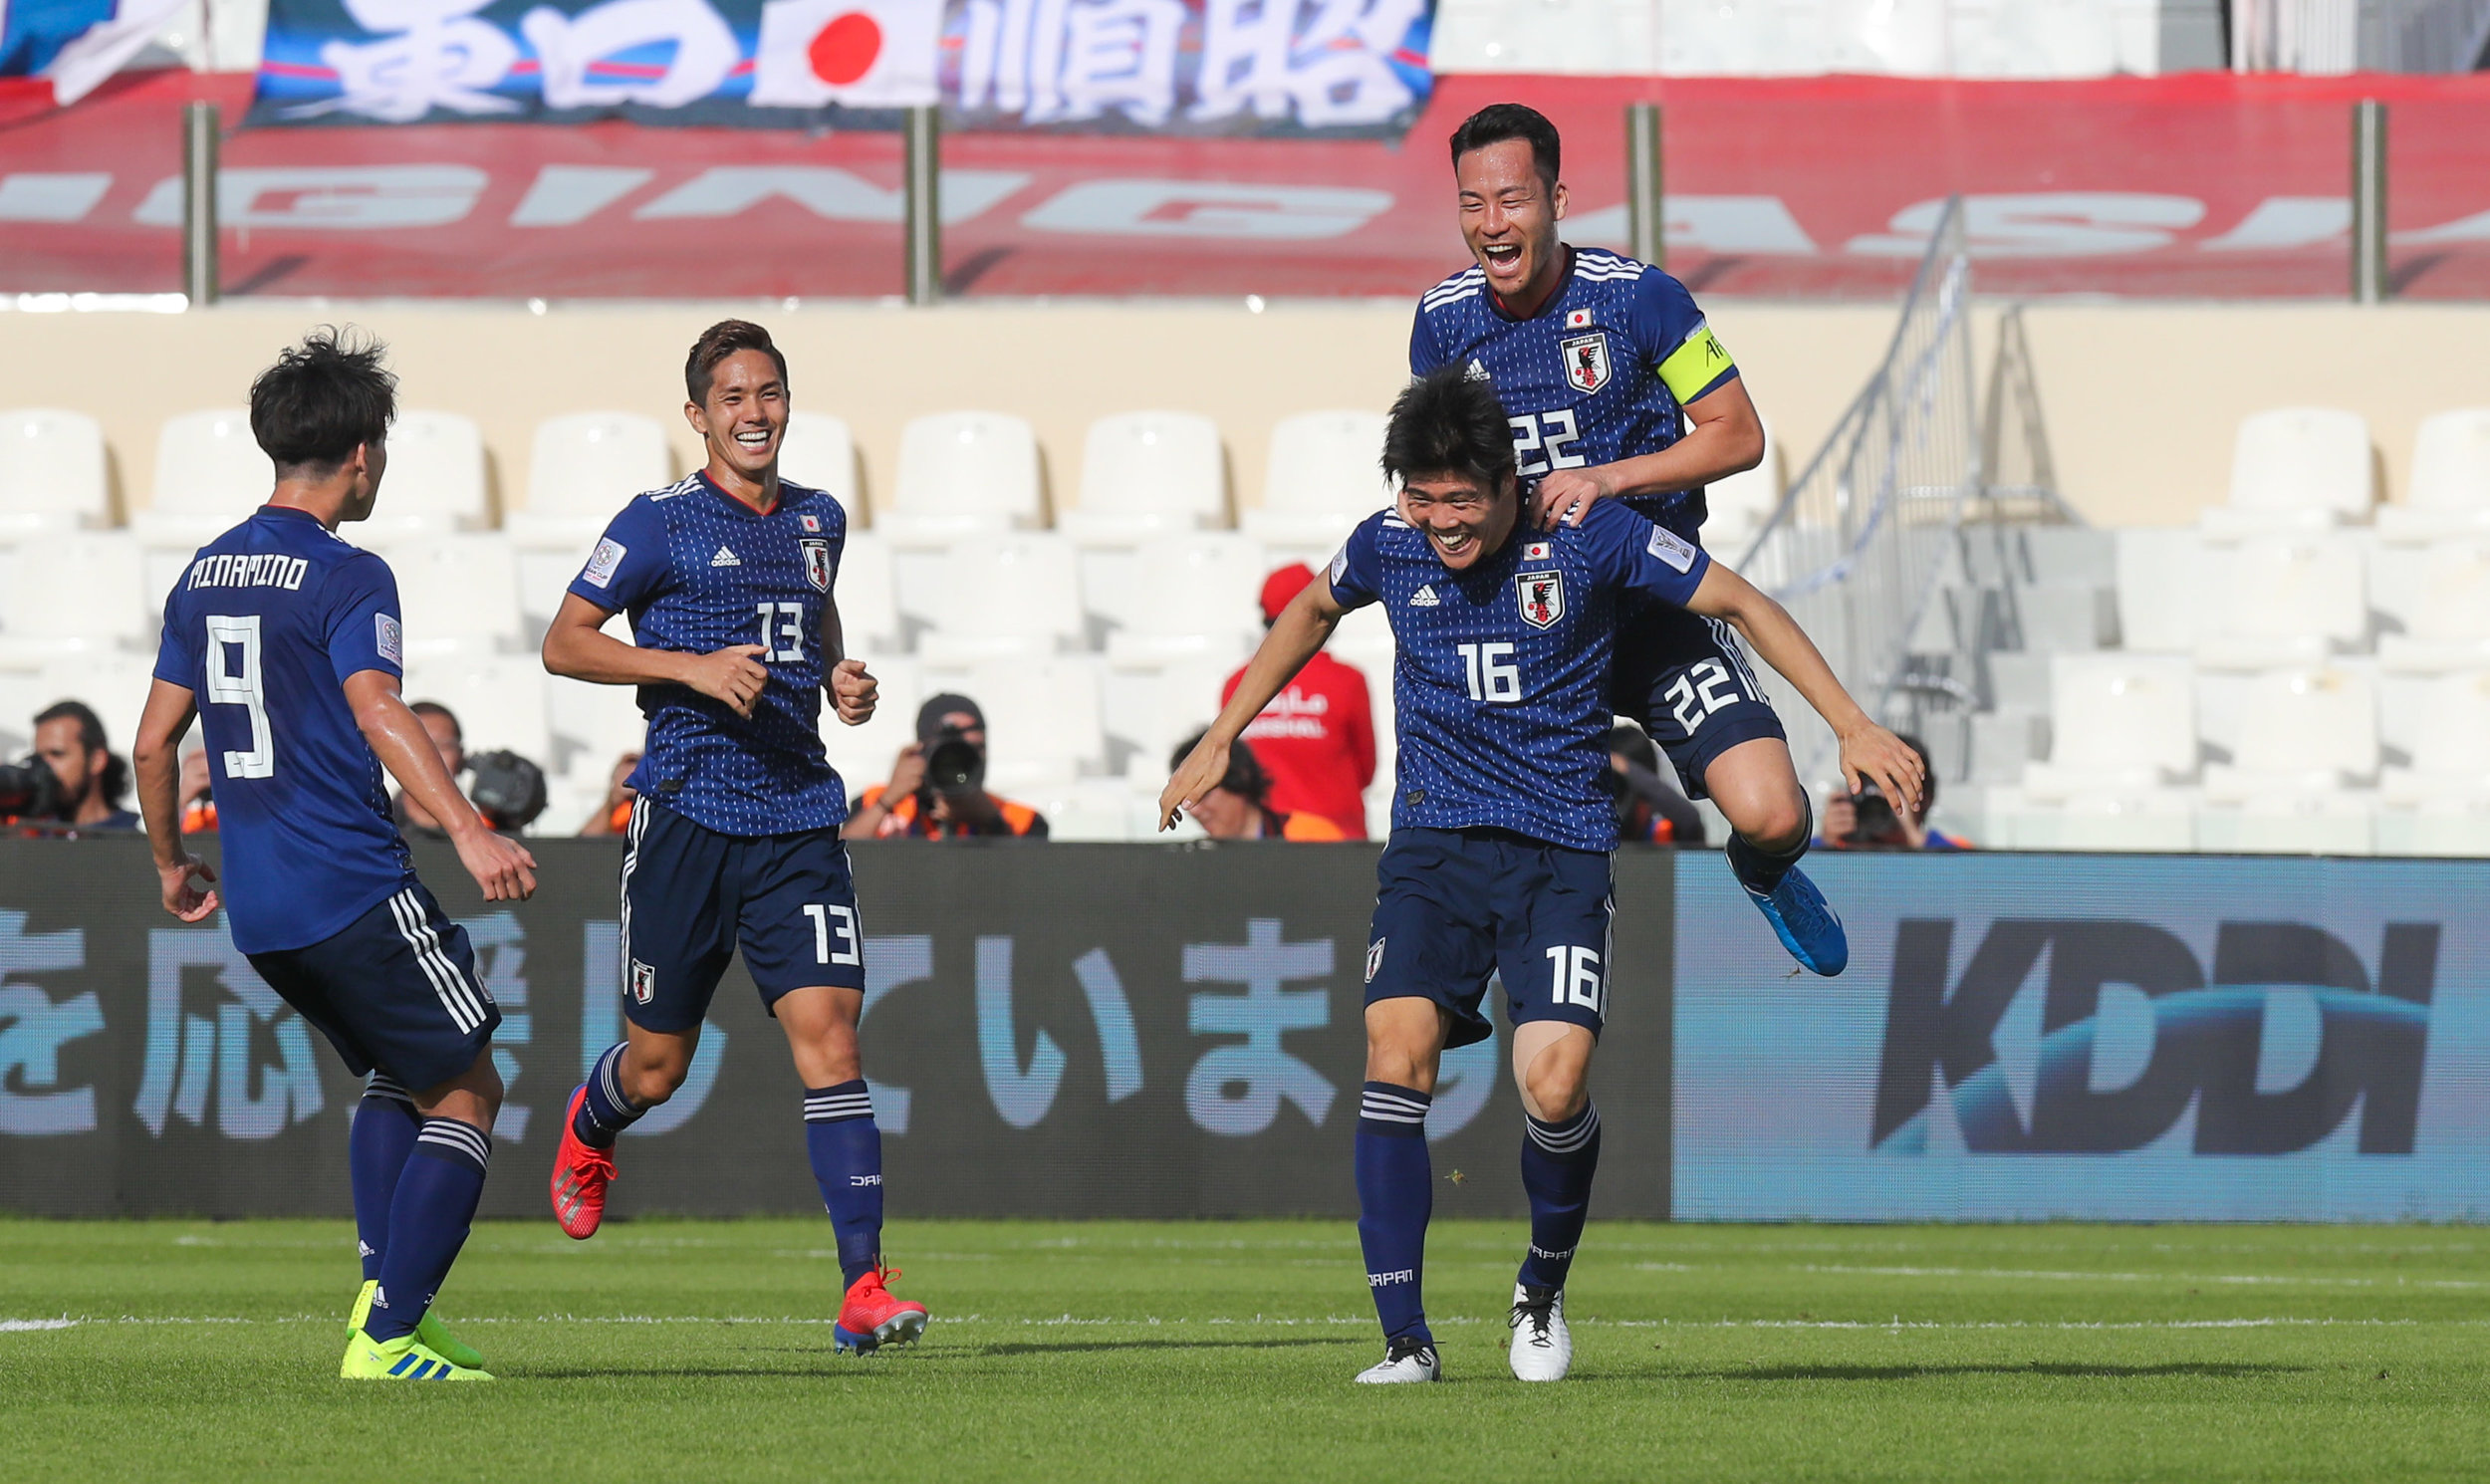 Takehiro Tomiyasu celebrates, Japan will need to find a way to make their tactics more effective (Asian Football Confederation (AFC))